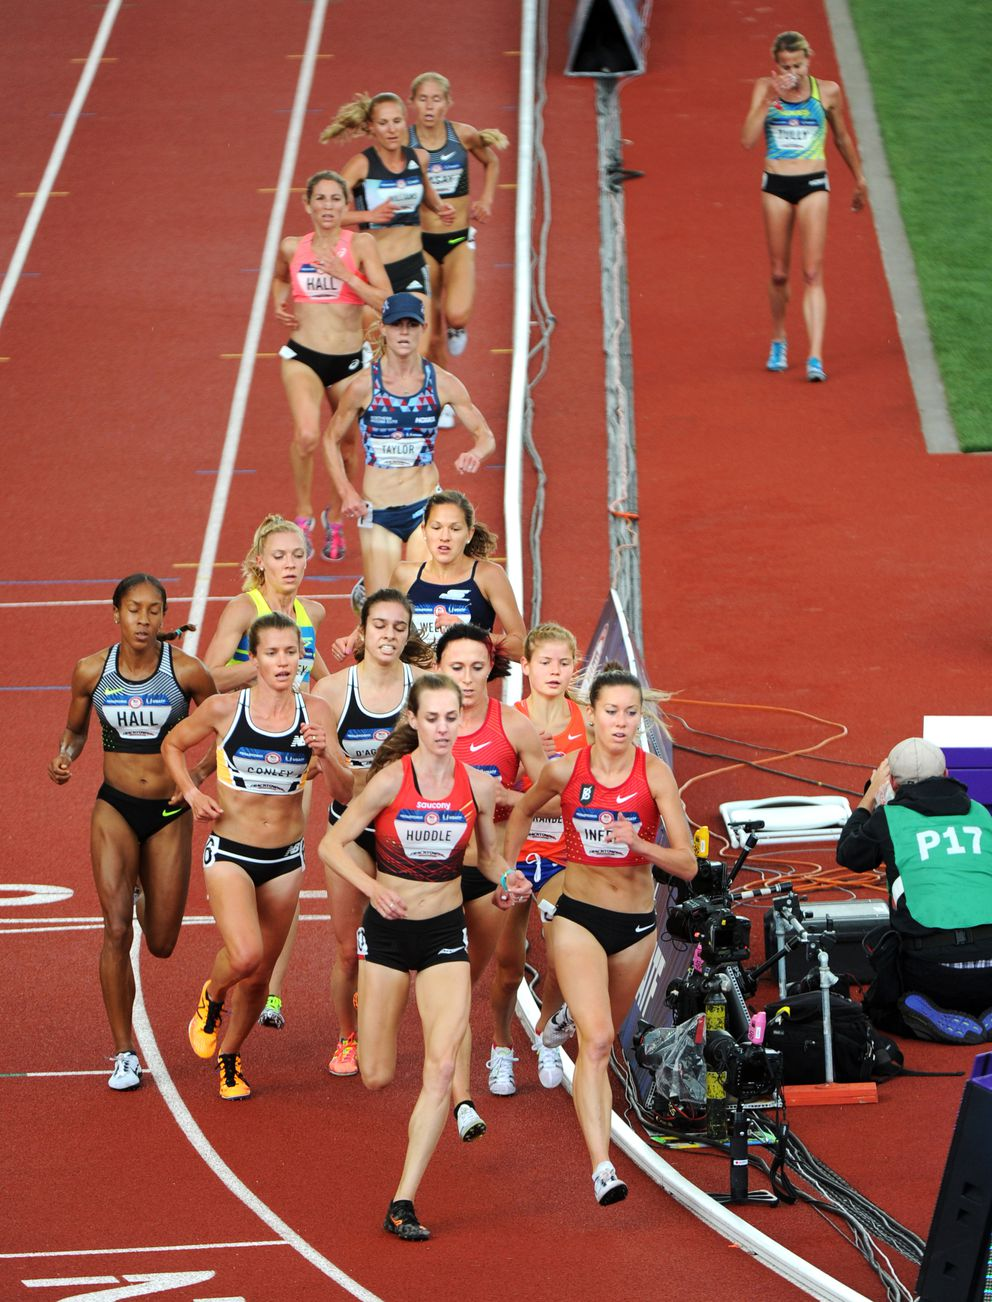 Allie Ostrander, second from right, runs with the lead pack early on before recording an eighth-place finish in the finals of the women's 5,000 meters at the U.S. Olympic Team Trials for Track and Field on Sunday afternoon, July 10, 2016, at Hayward Field in Eugene, Oregon. (Erik Hill / Alaska Dispatch News)